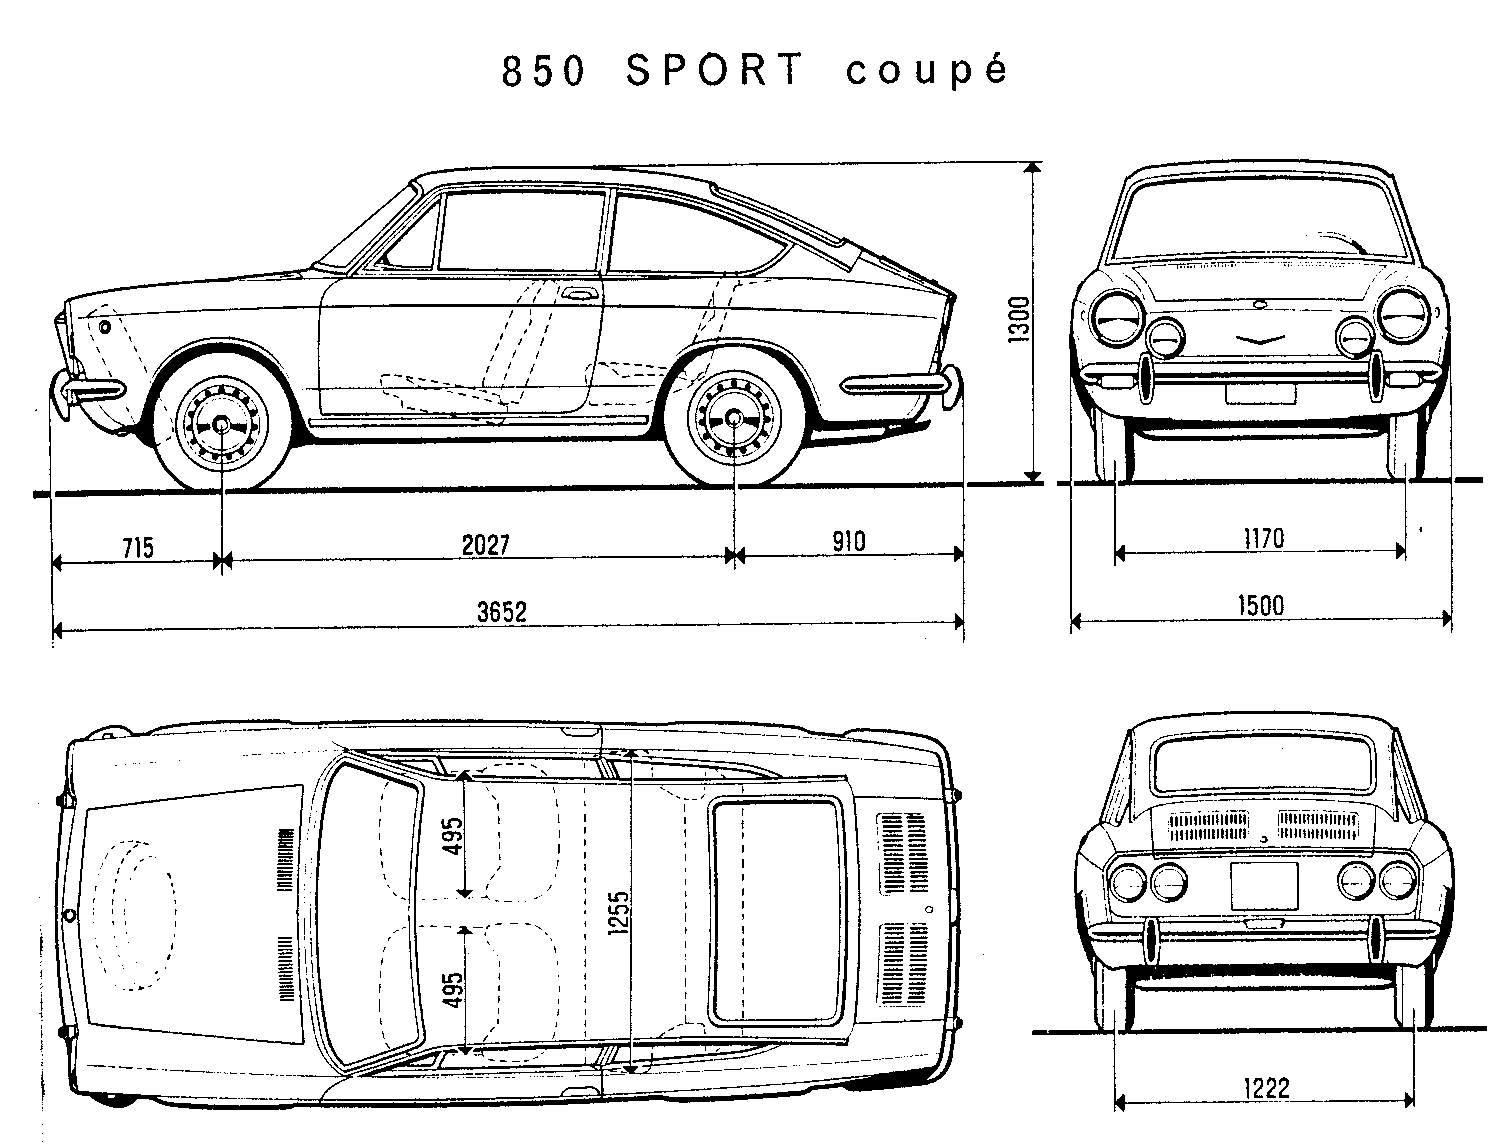 Seat 850 1969 sport coup blueprint download free blueprint for 3d seat 850 blueprint malvernweather Images